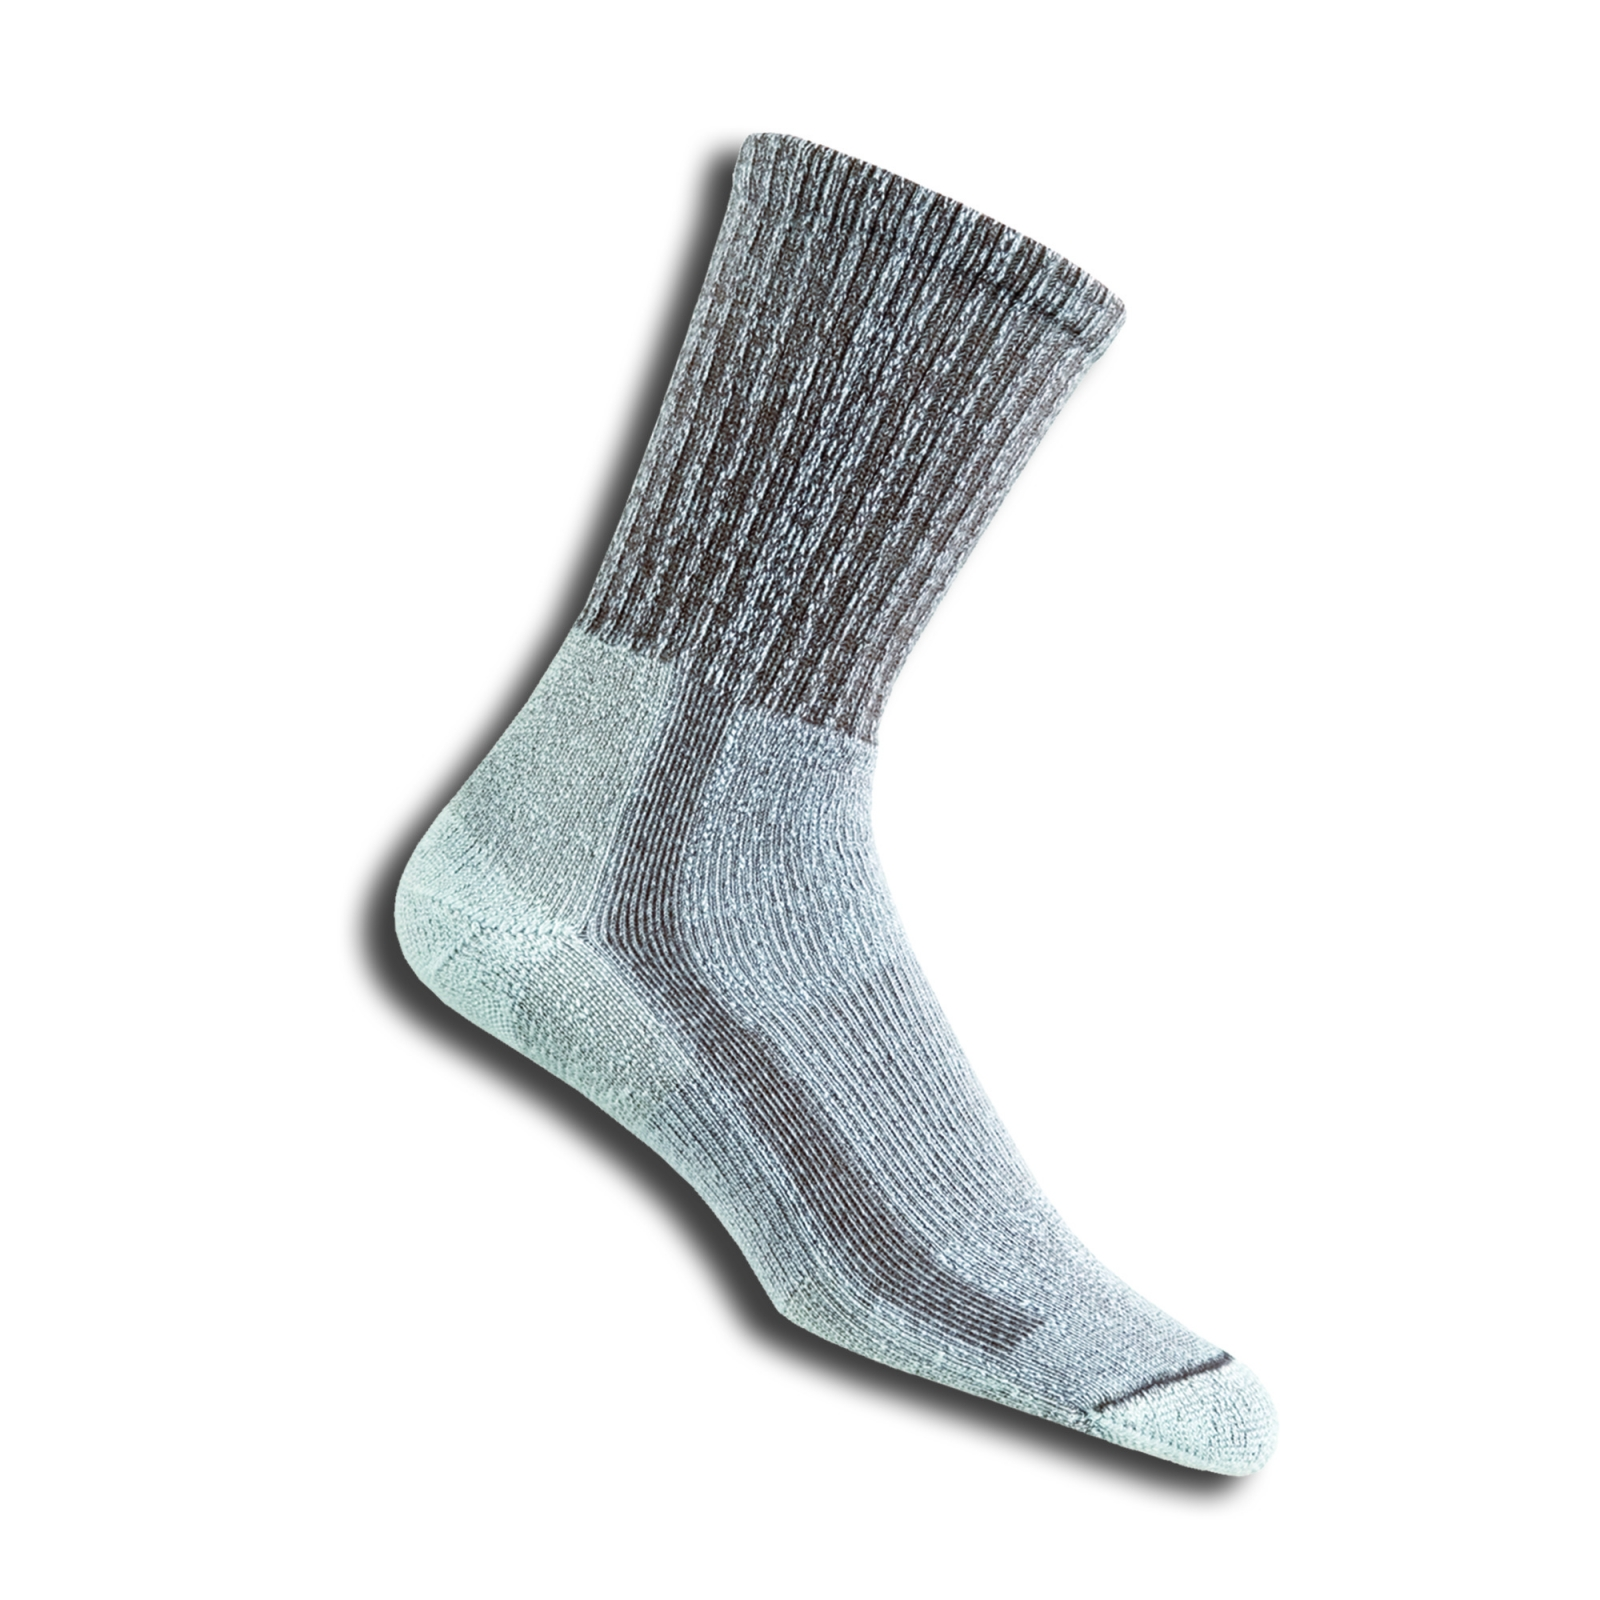 Thorlos Light Hiking Socks - Brown